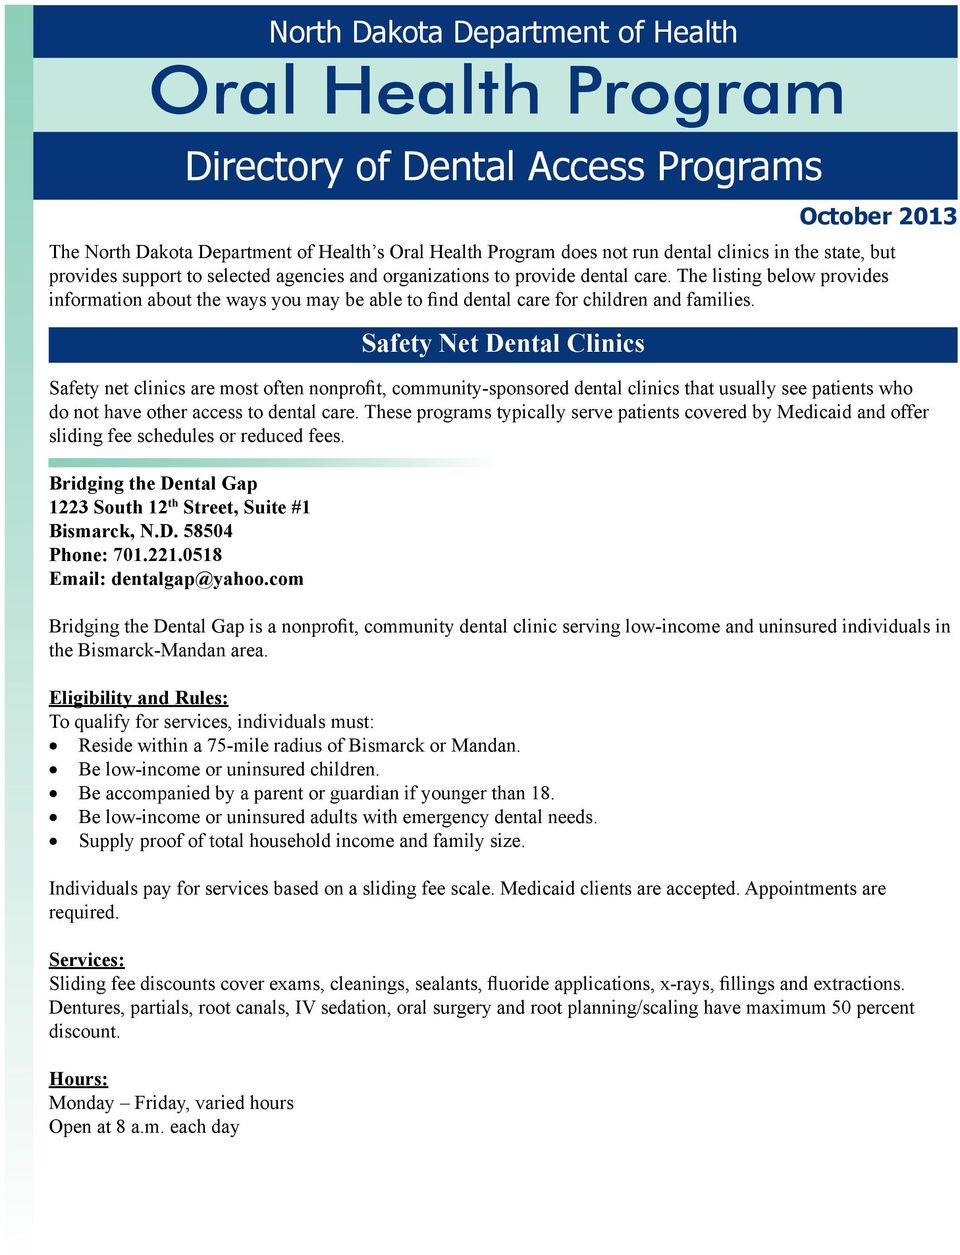 The listing below provides information about the ways you may be able to find dental care for children and families.